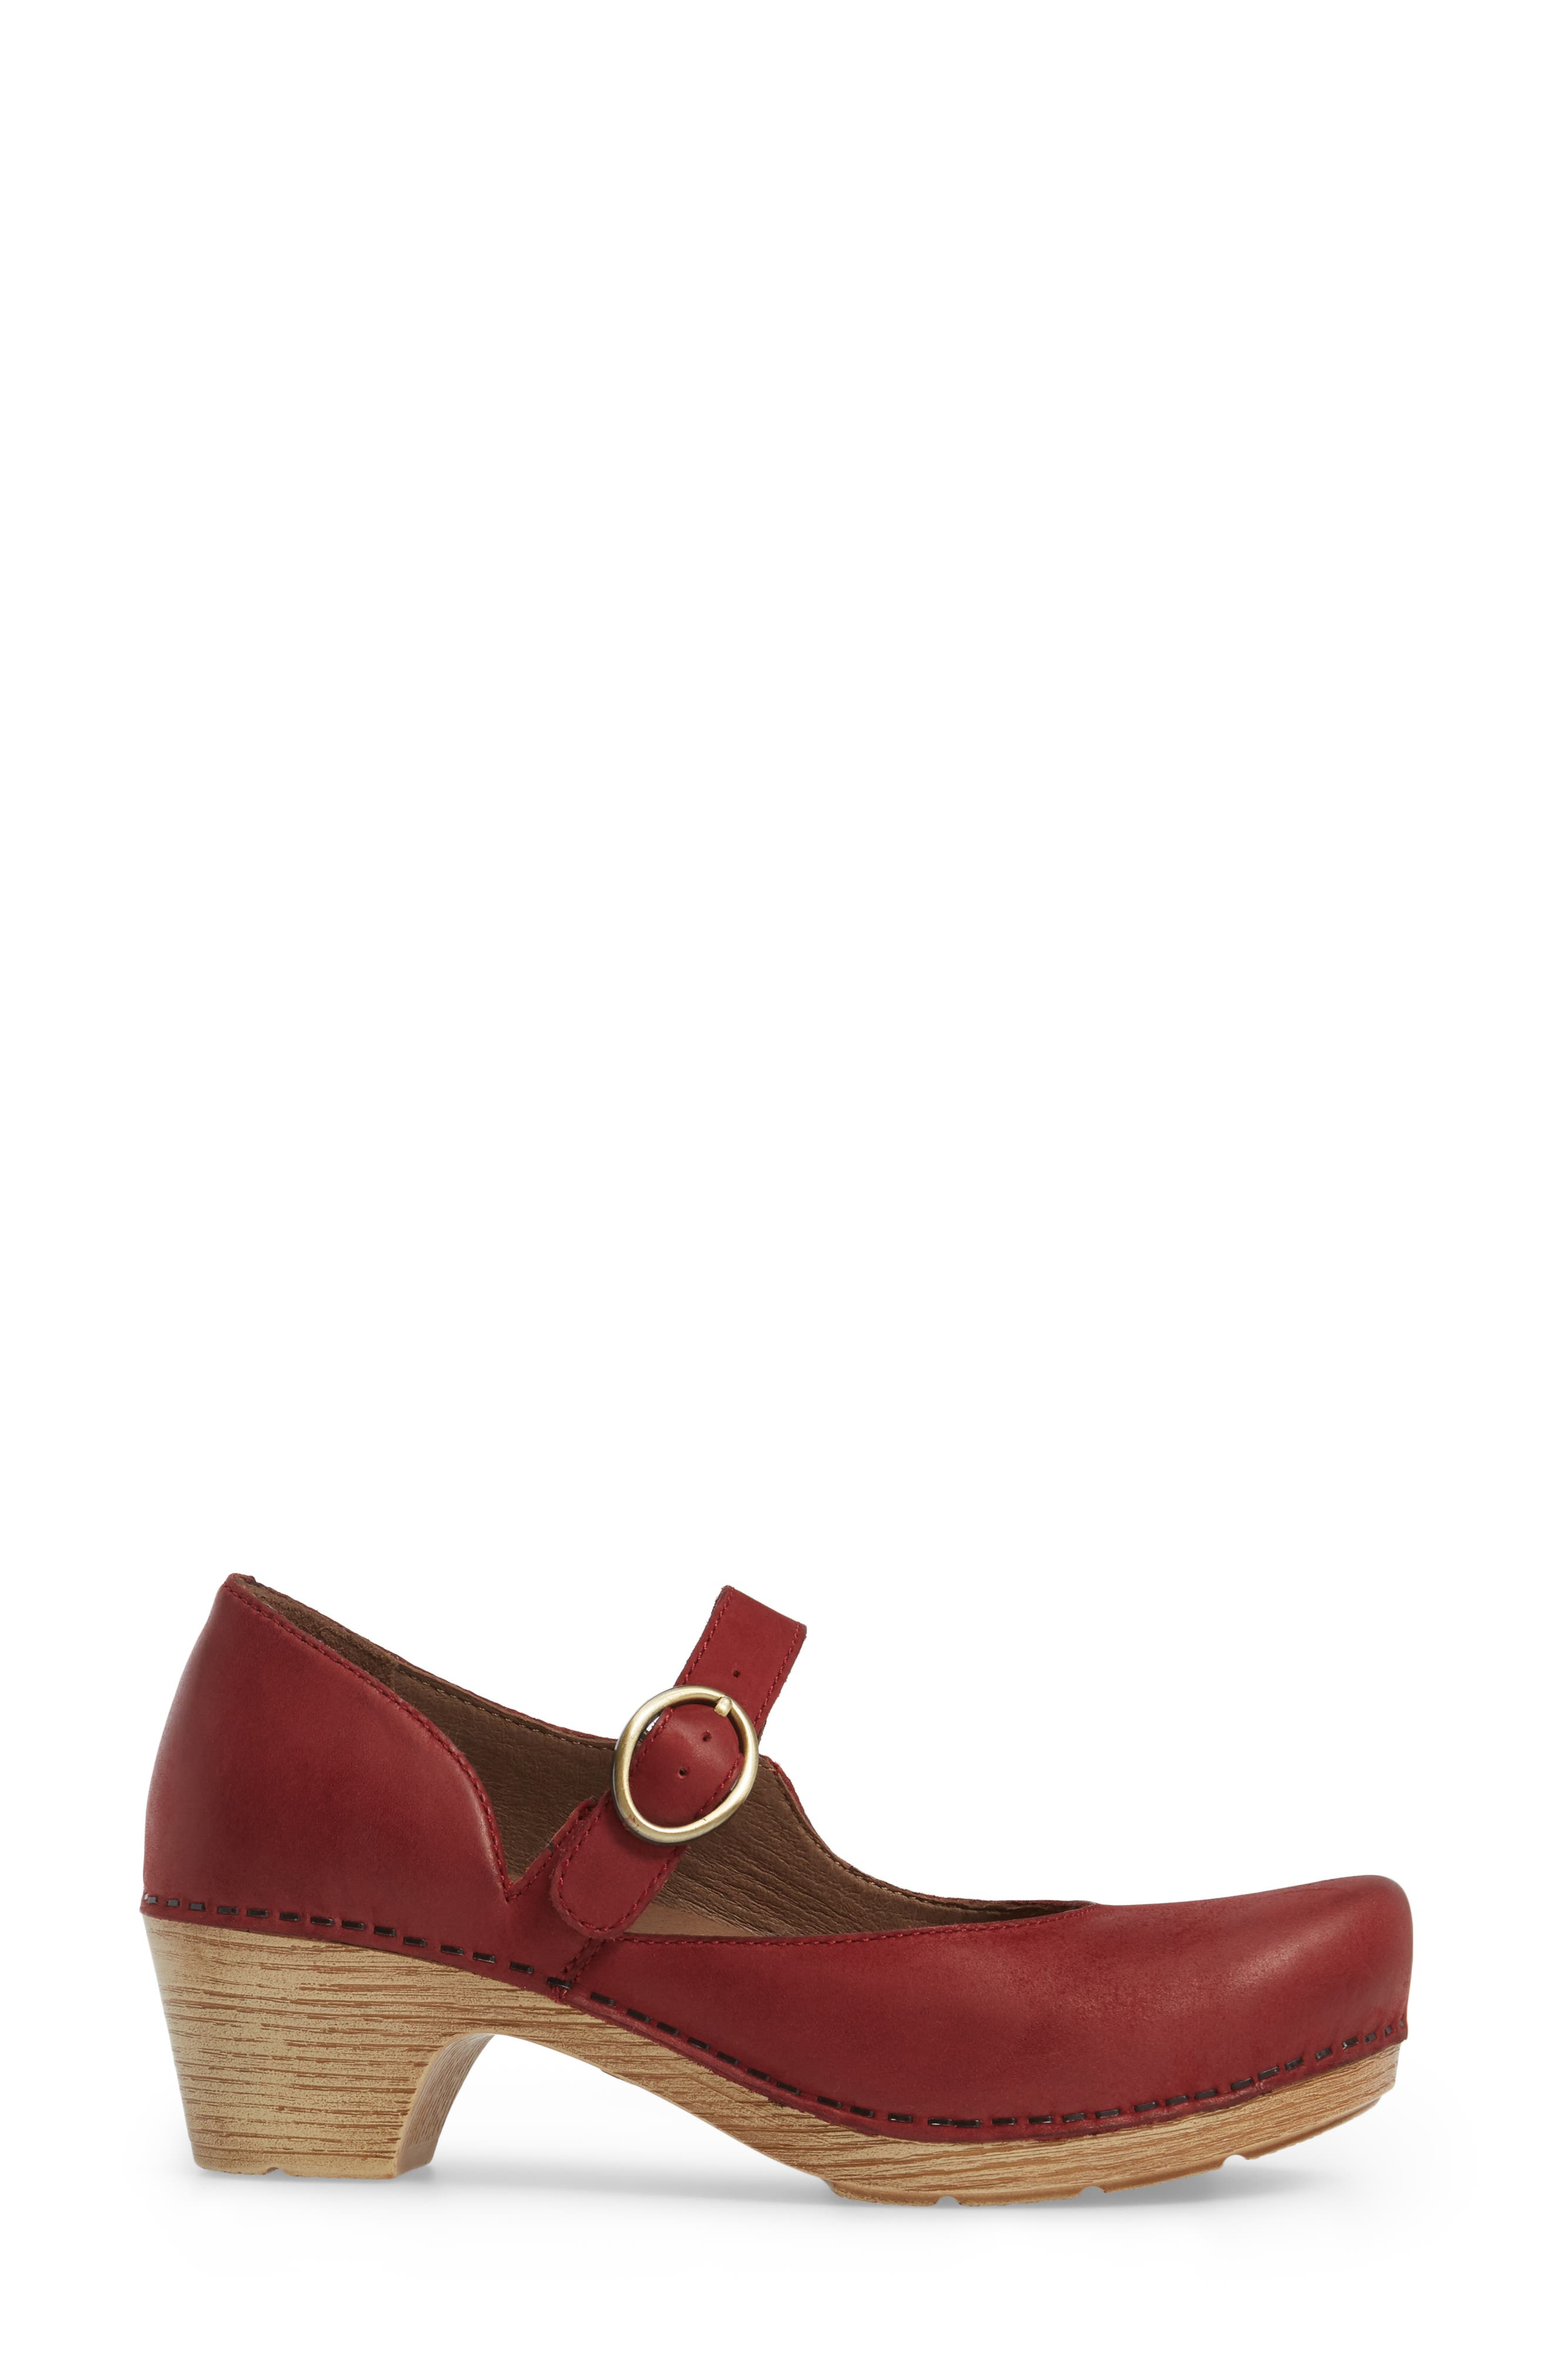 Missy Mary Jane Pump,                             Alternate thumbnail 3, color,                             Red Leather